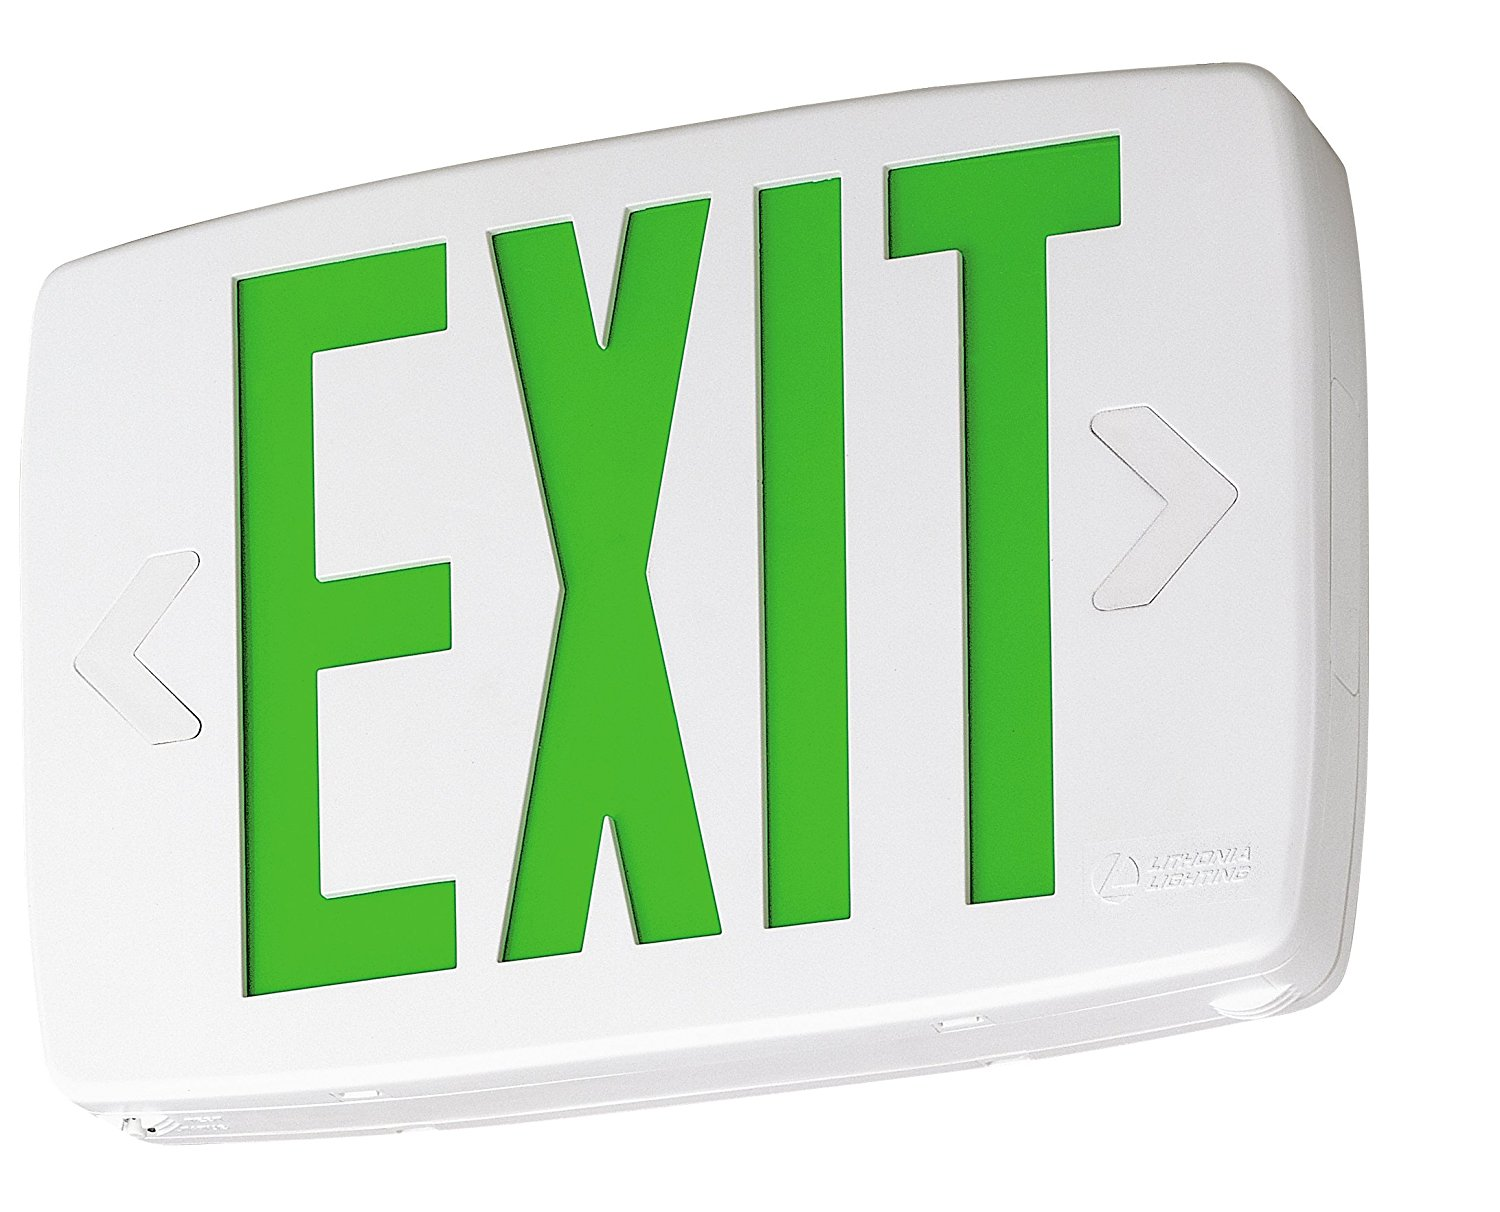 Lithonia Lighting LQM S W 3 G 120/277 X2 M6 Quantum Thermoplastic LED Emergency Exit Sign with Stencil-Faced White Housing and Green Letters